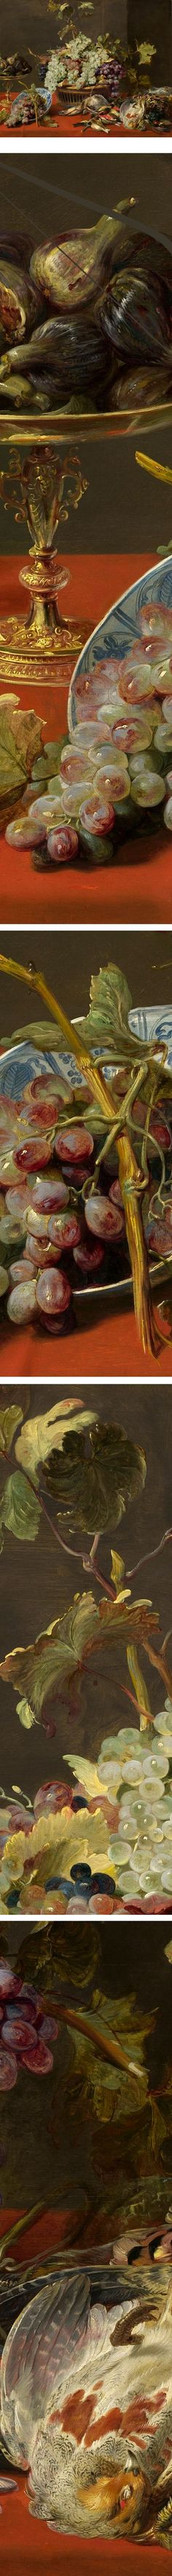 Still Life with Grapes and Game, Frans Snyders